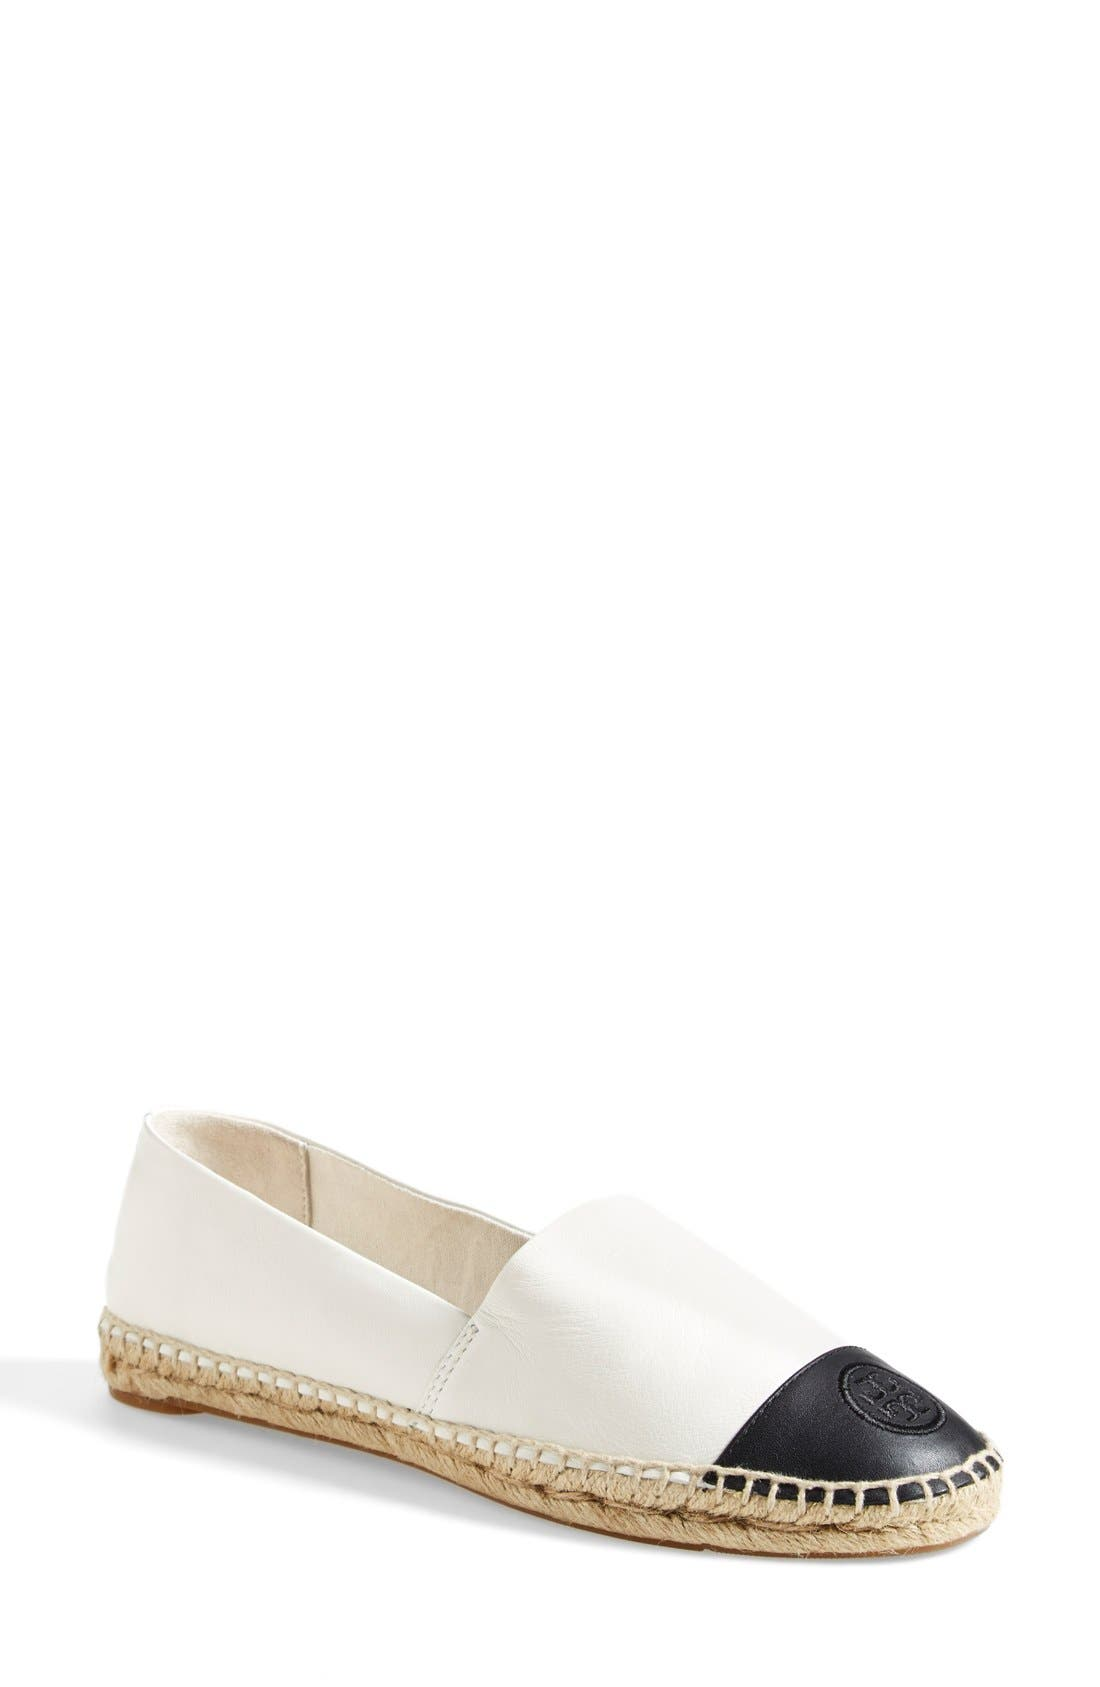 Main Image - Tory Burch Colorblock Espadrille Flat (Women)